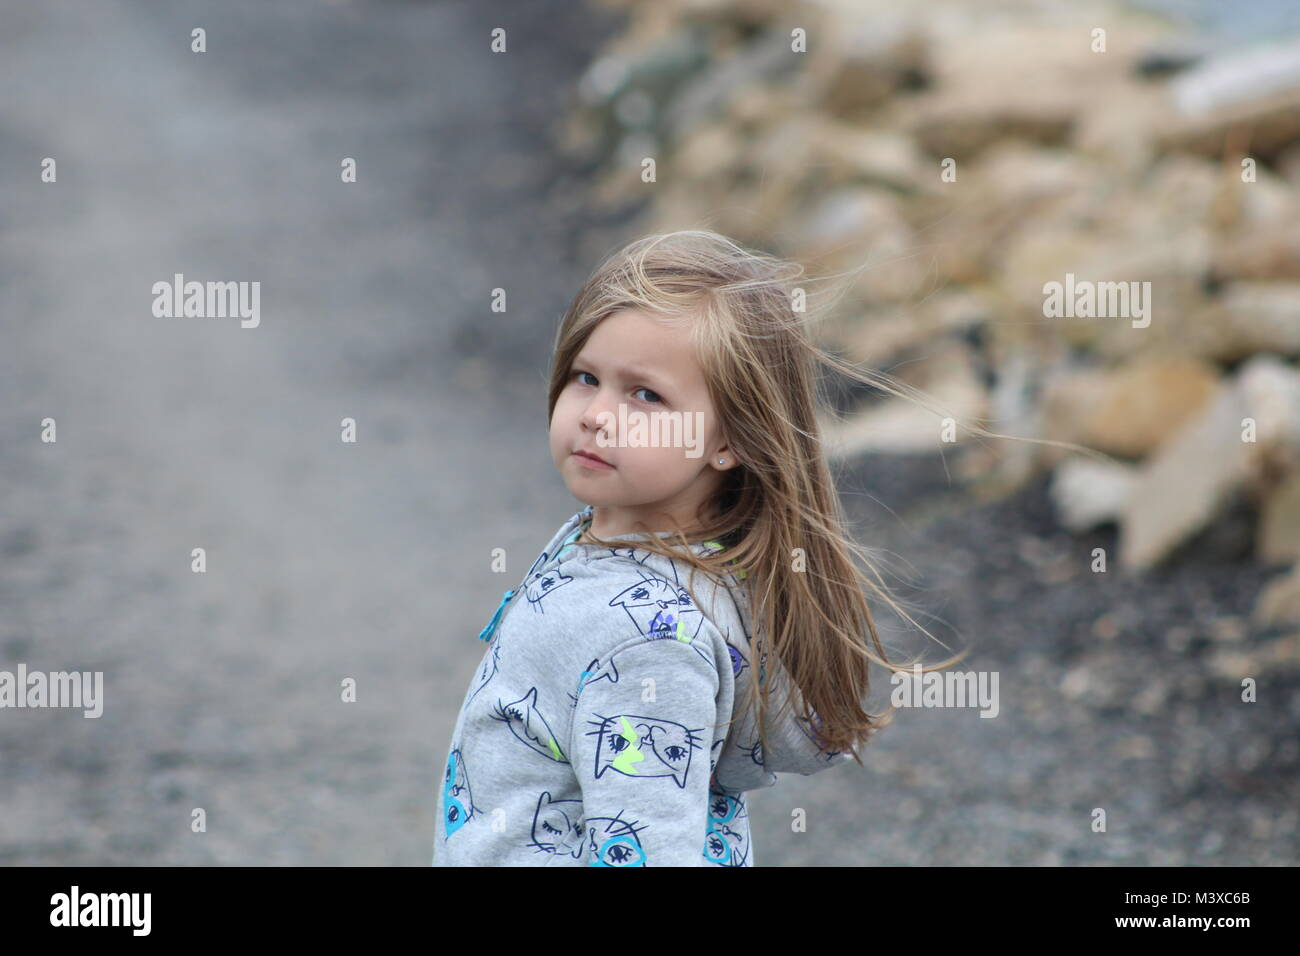 5 year old granddaughter on a rainy day on the path to the beach in Virginia - Stock Image